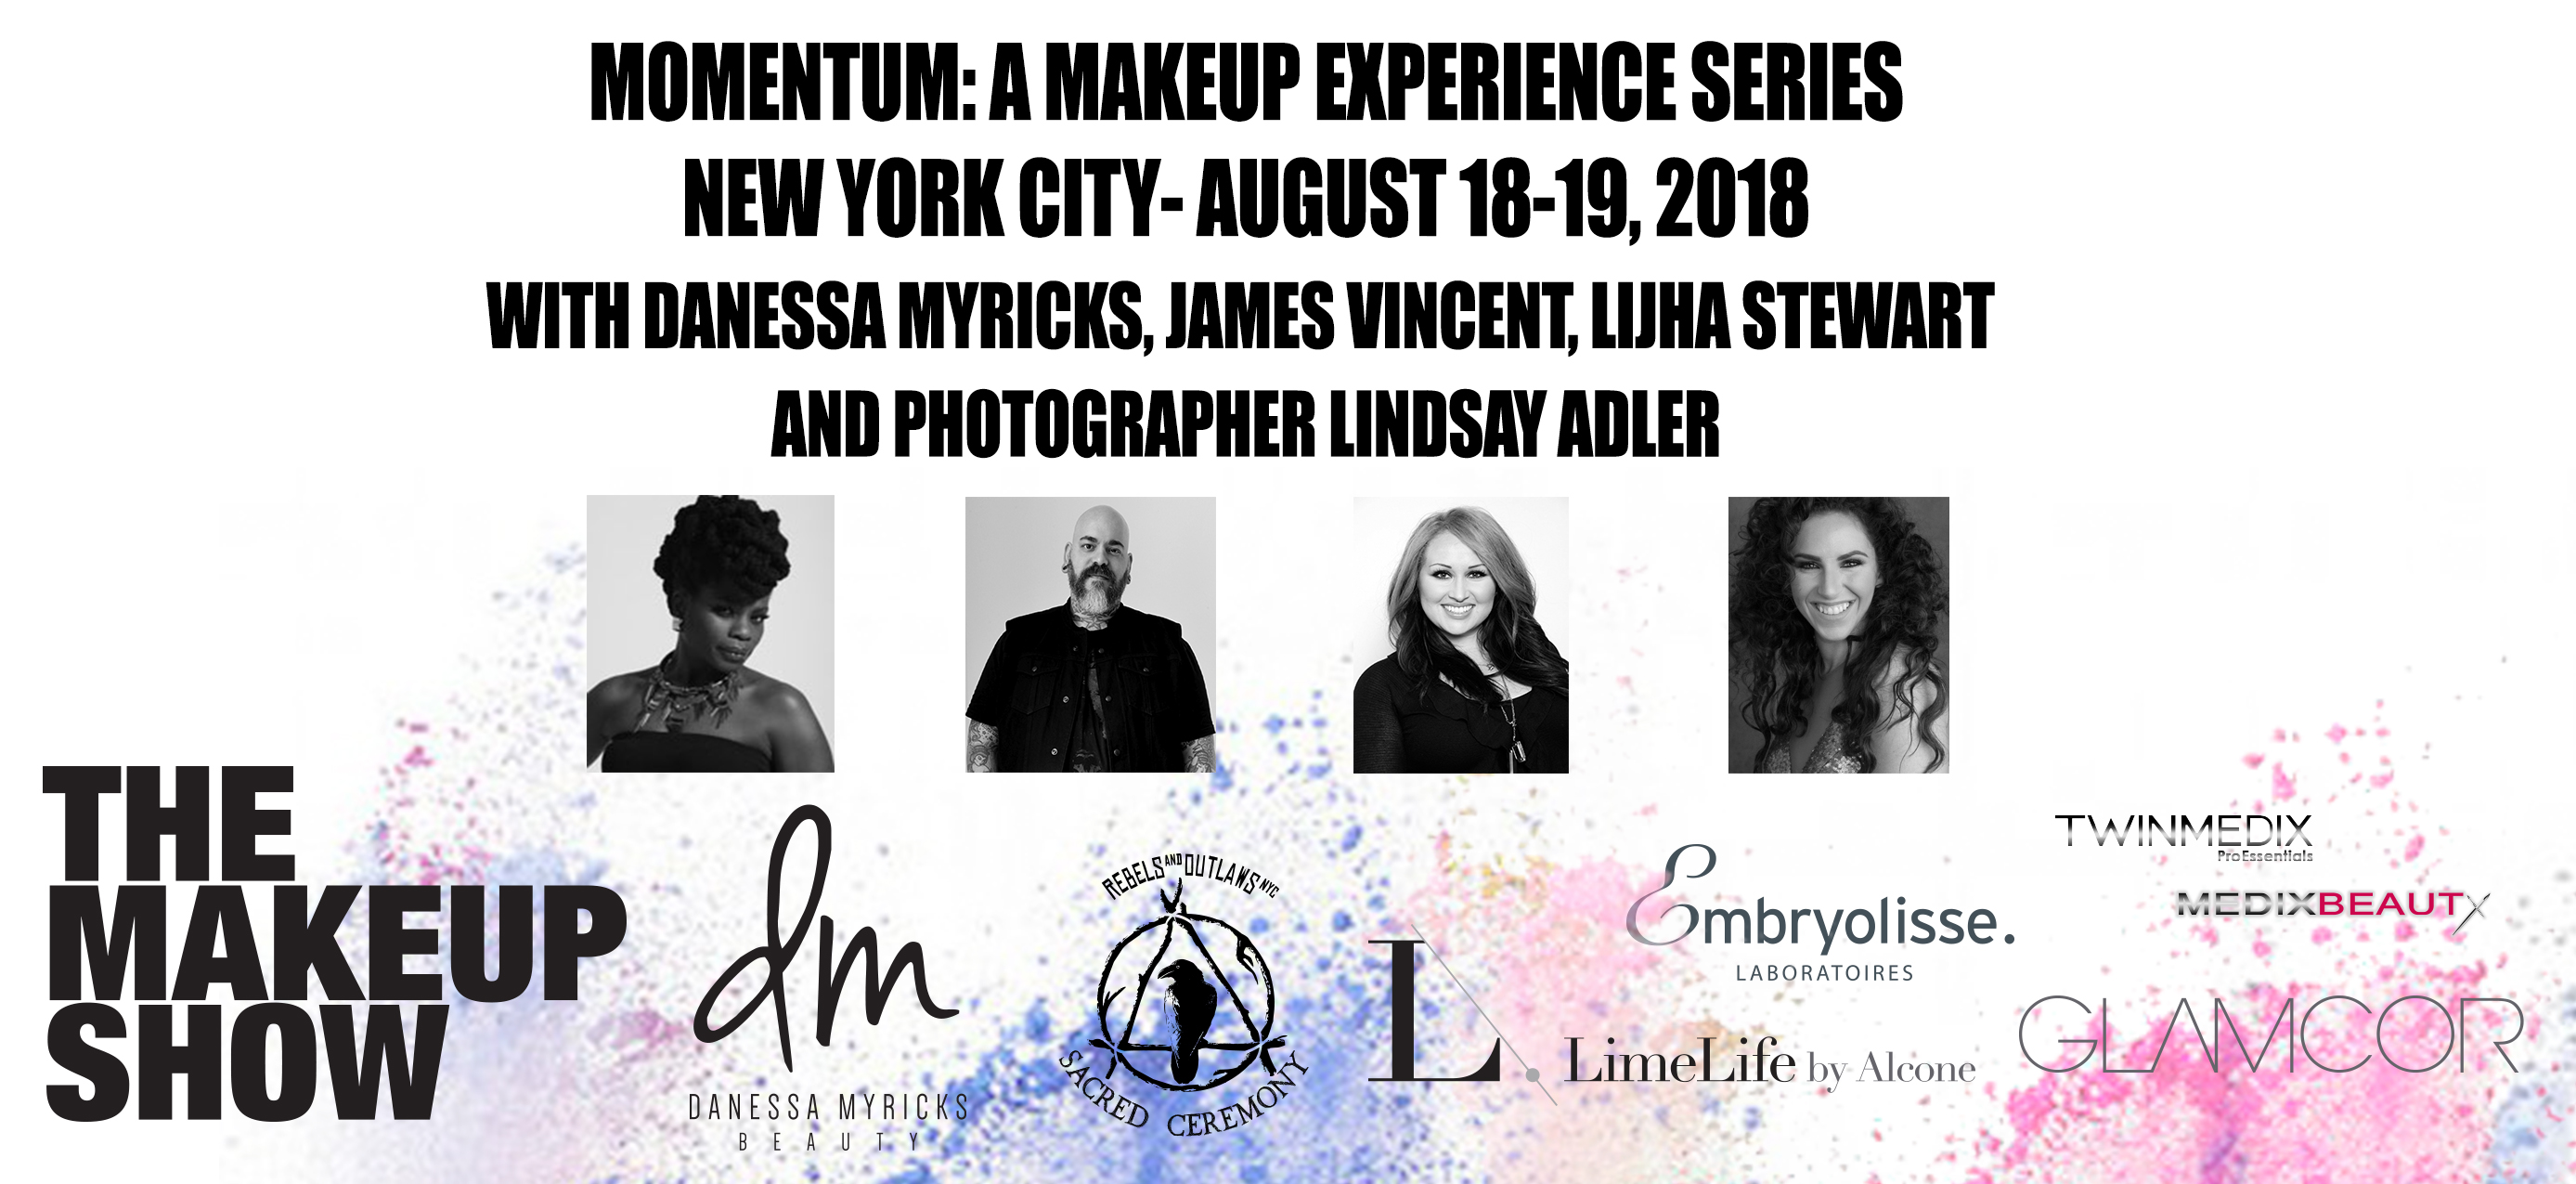 The Makeup Show: Momentum New York